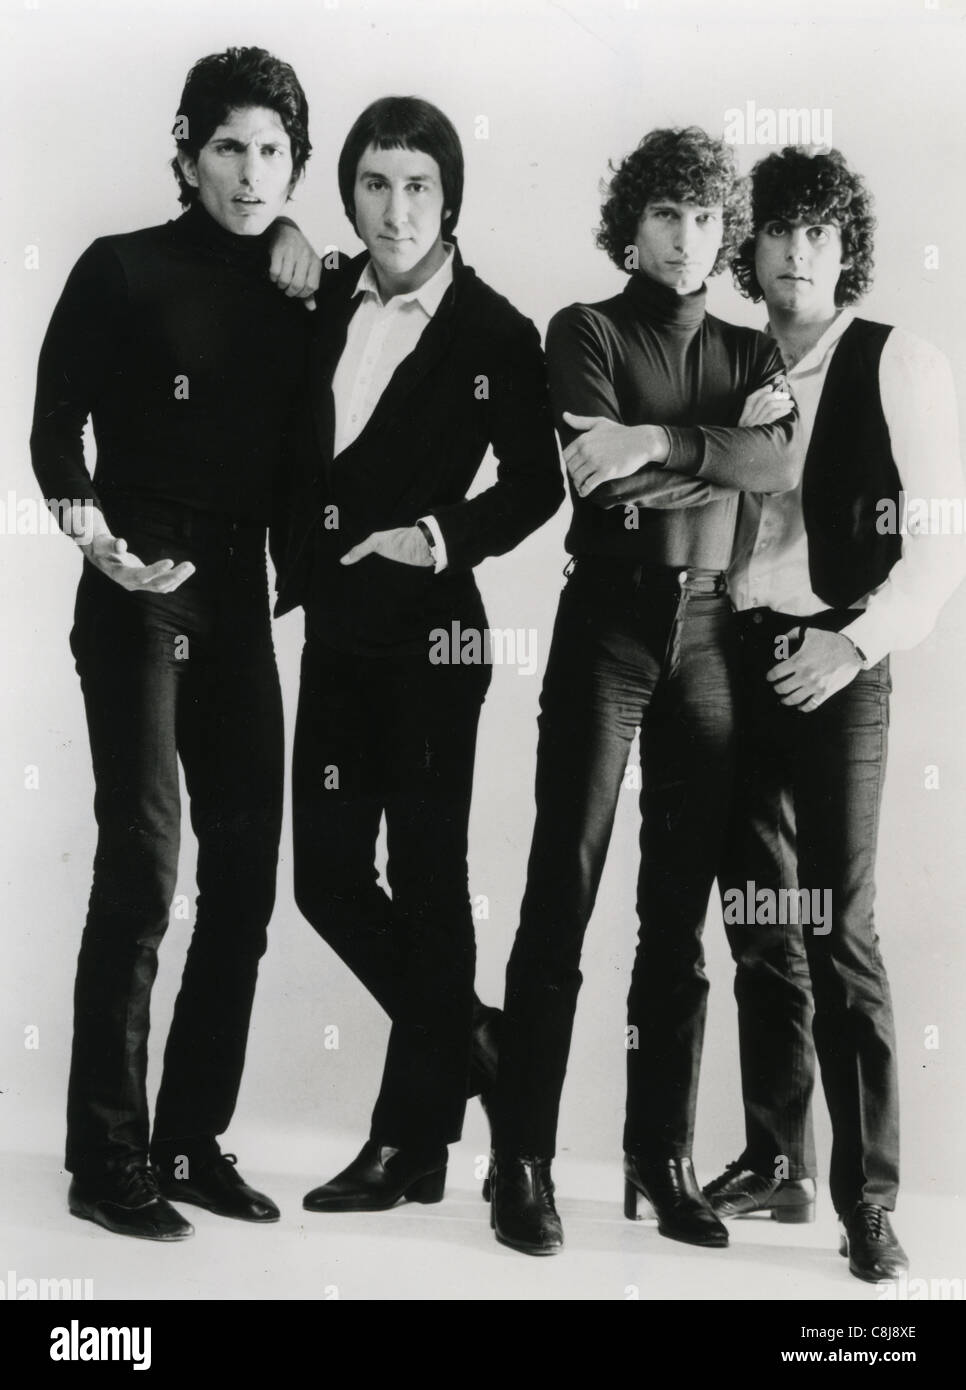 THE KNACK Promotional photo of US rock group about 1980 Stock Photo